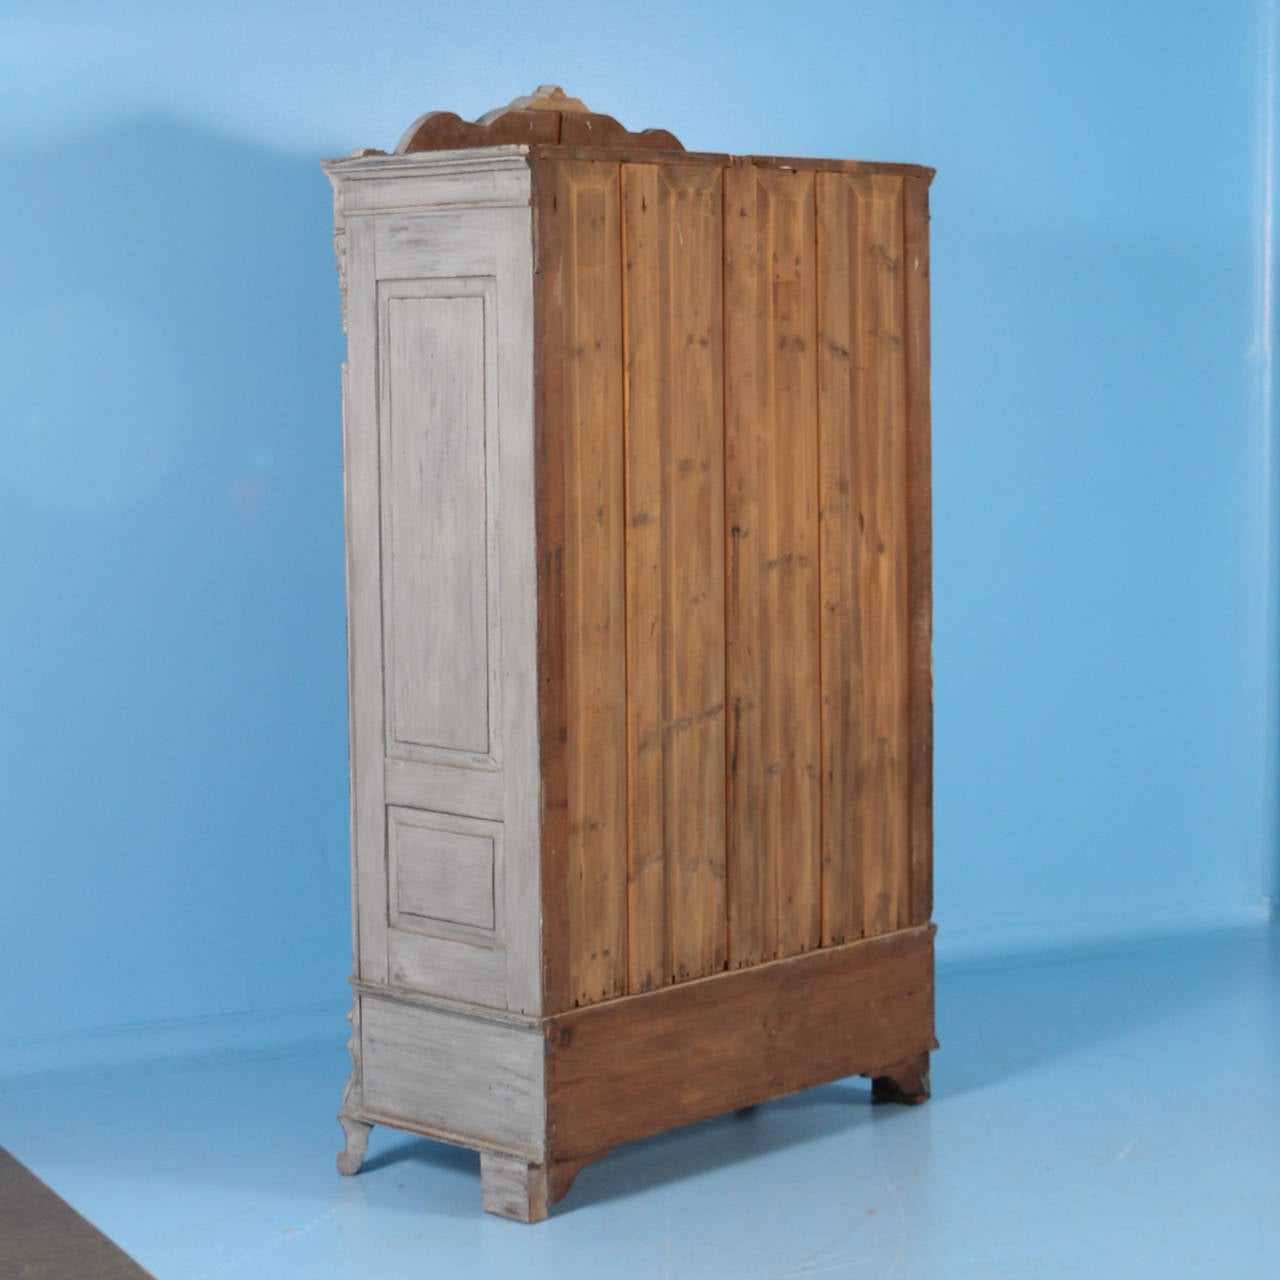 Antique Painted Swedish Armoire With Carved Detail, Circa